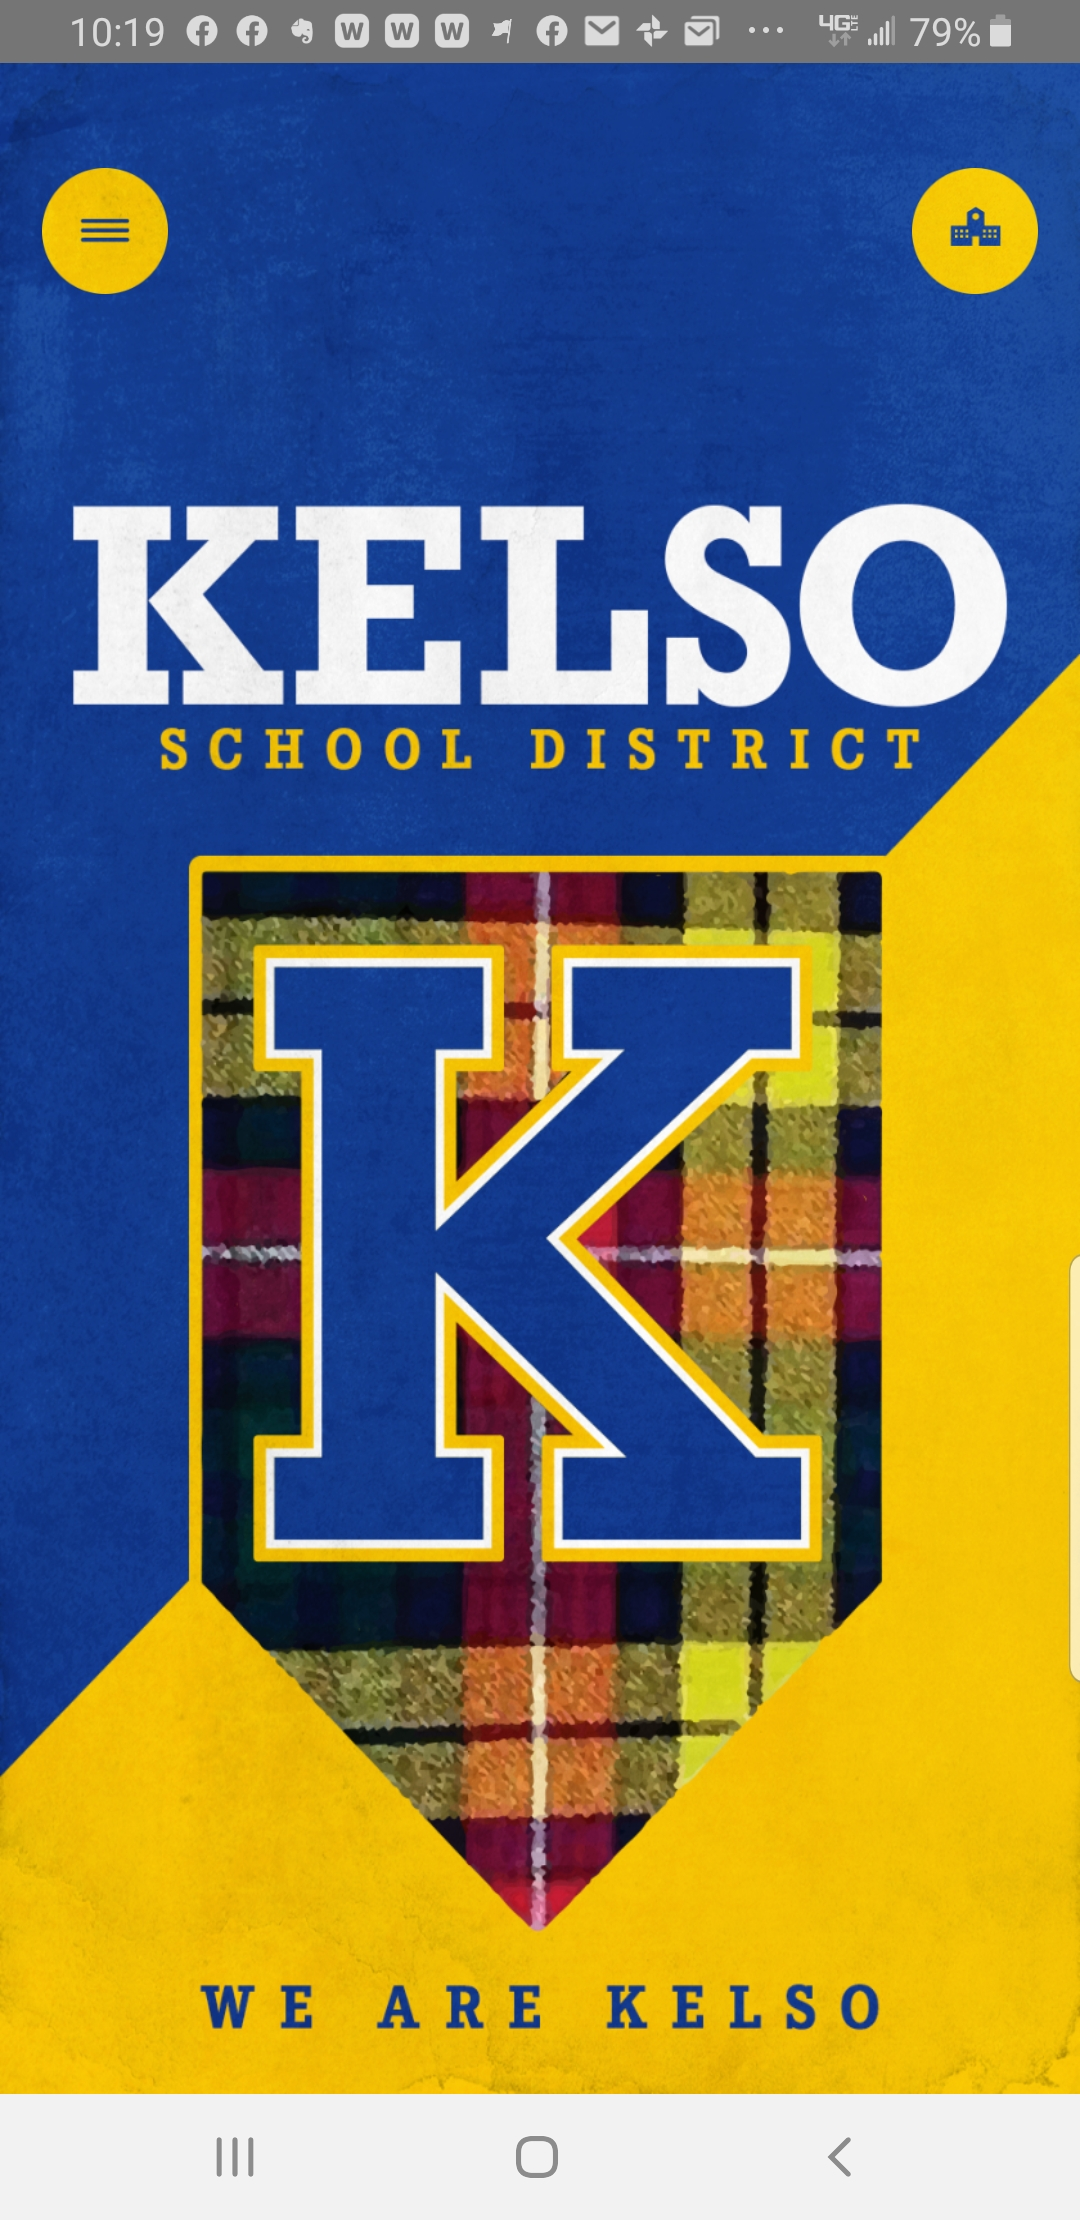 KELSO SCHOOL DISTRICT APP